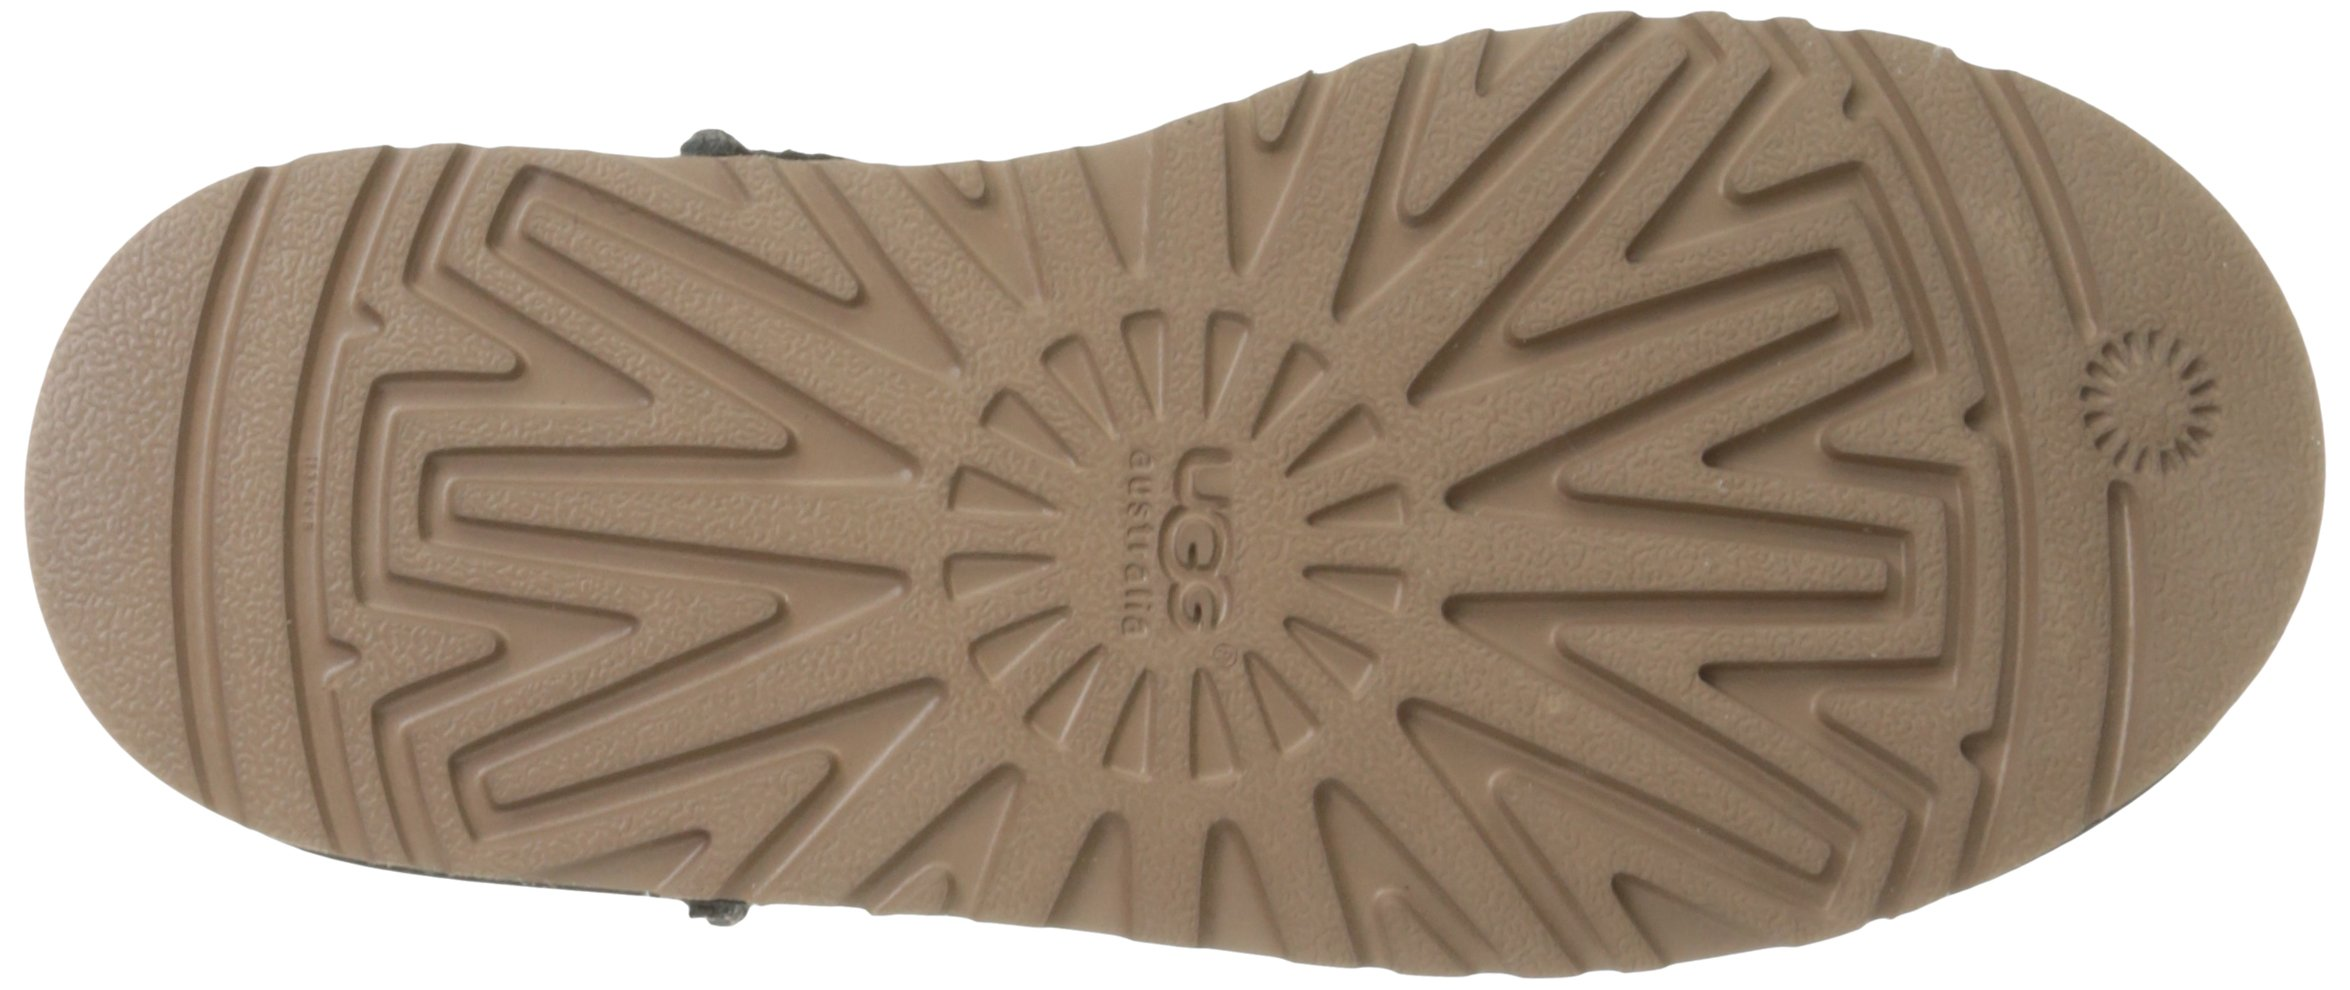 UGG Kids' K Classic Short Carranza Pull-on Boot, Black, 2 M US Little Kid by UGG (Image #3)